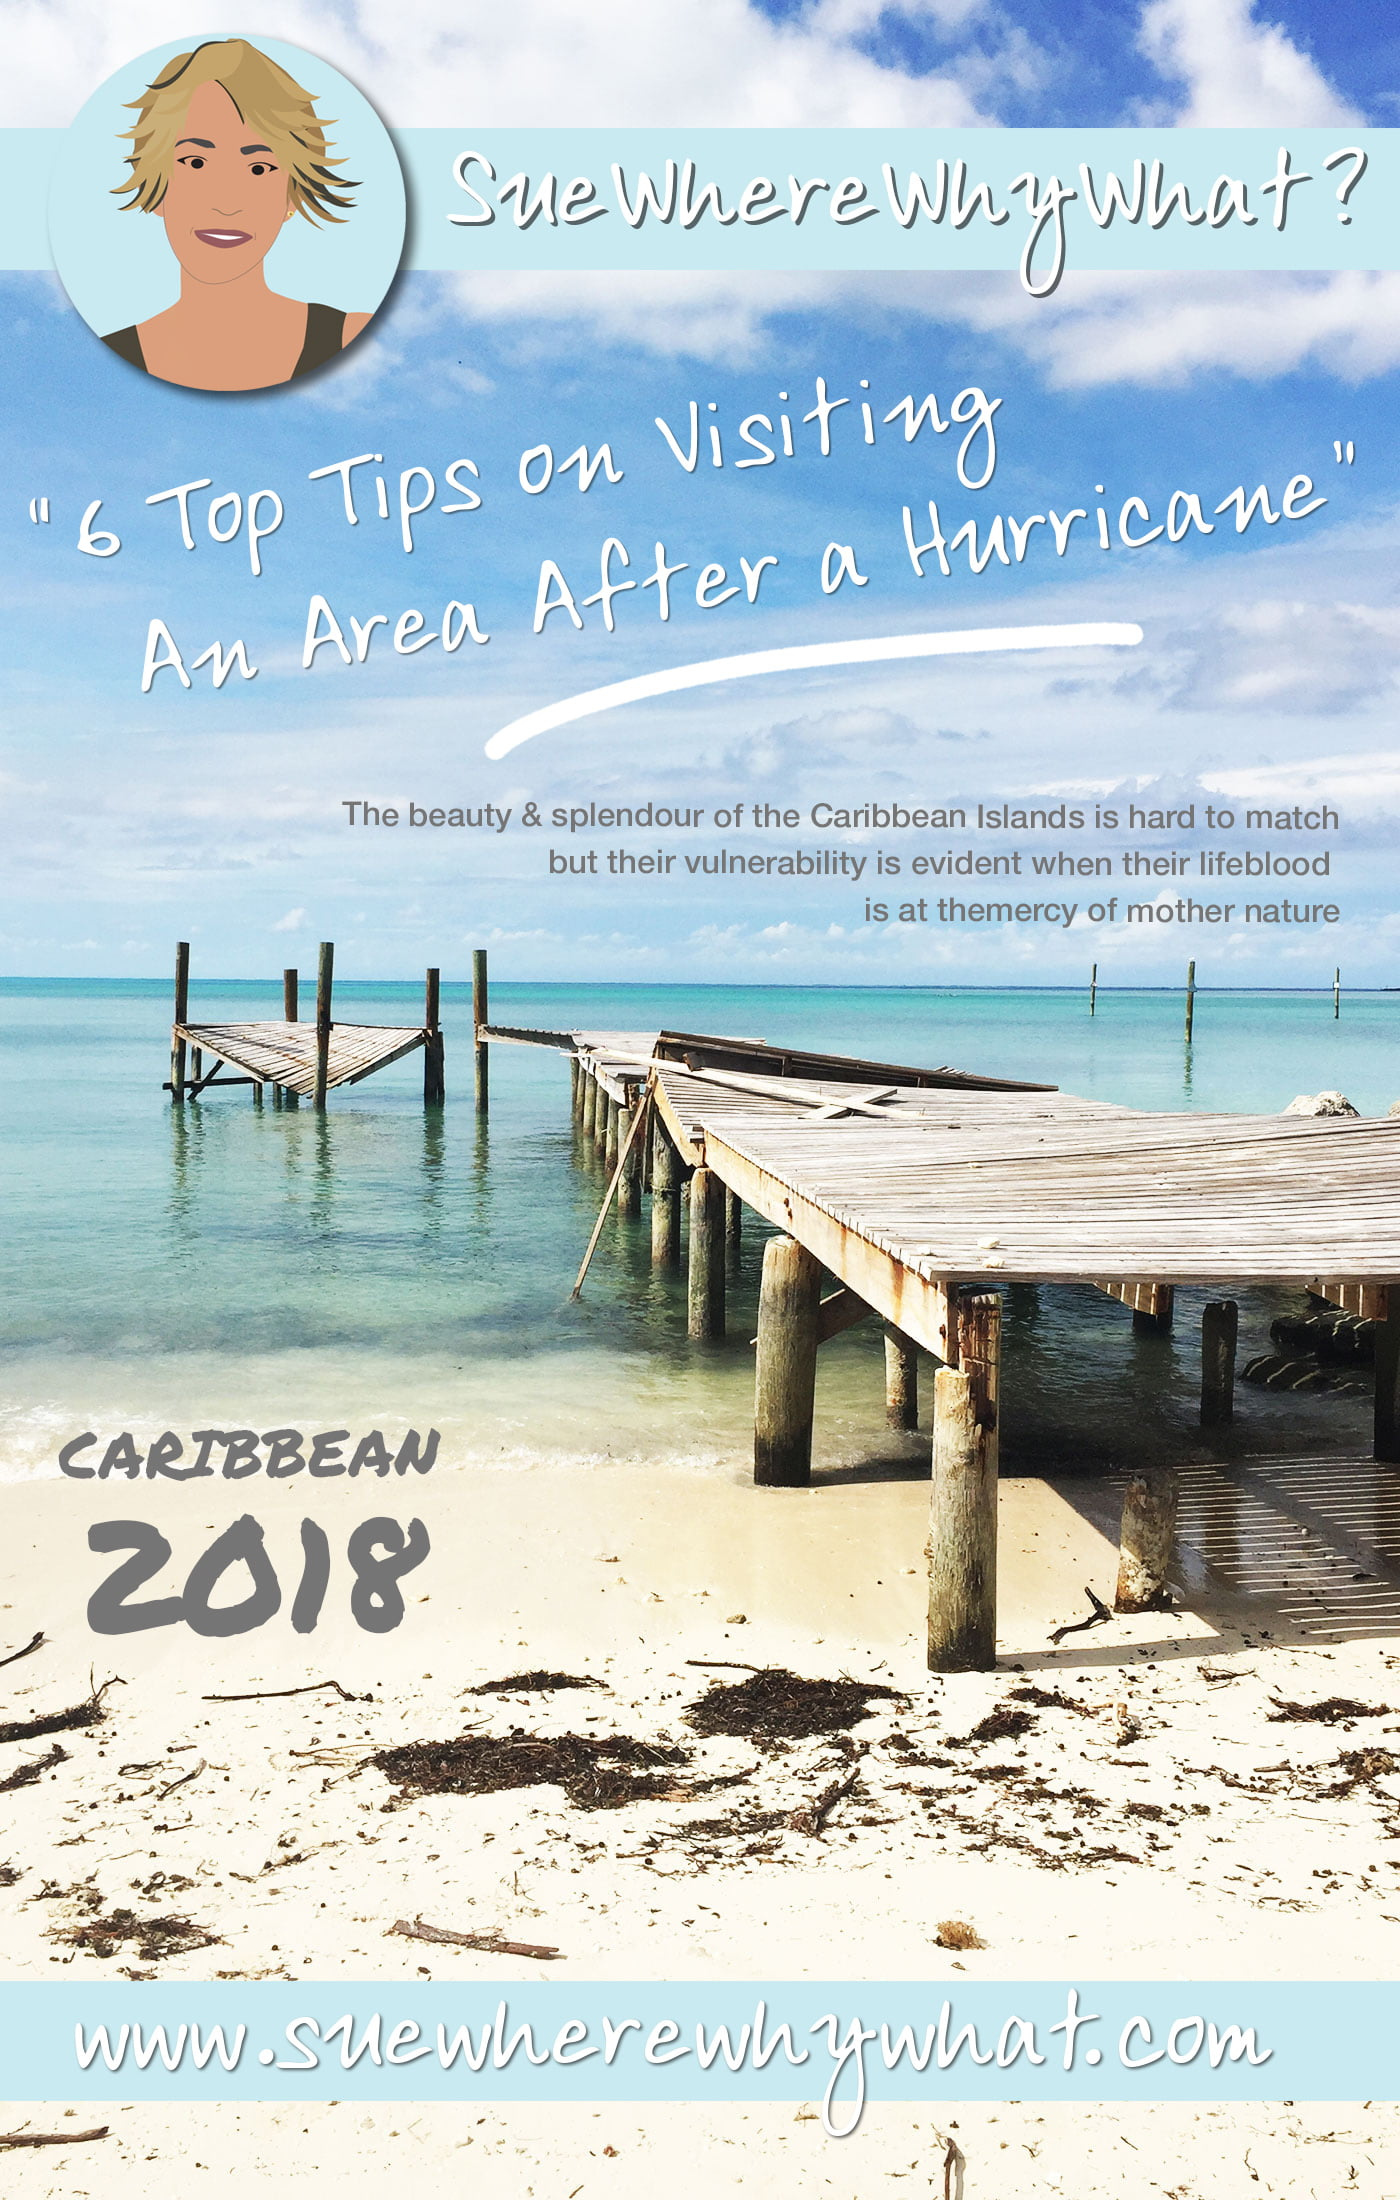 6 Top Tips on Visiting An Area After a Hurricane